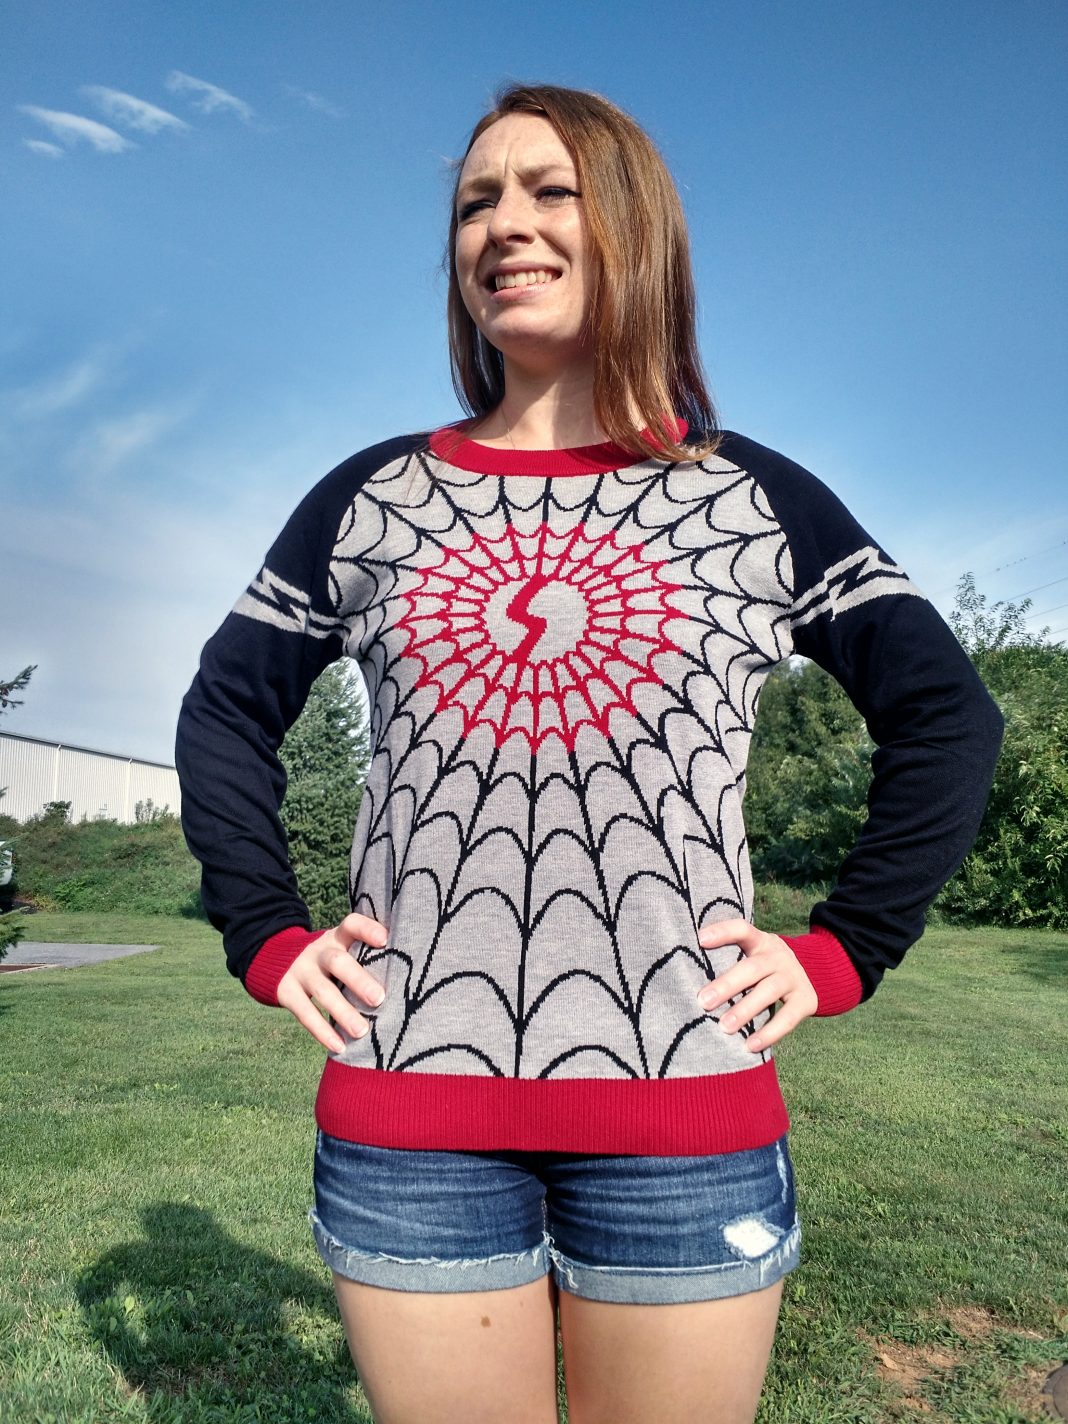 It's the I Am Silk Women's Costume Knit Sweater!